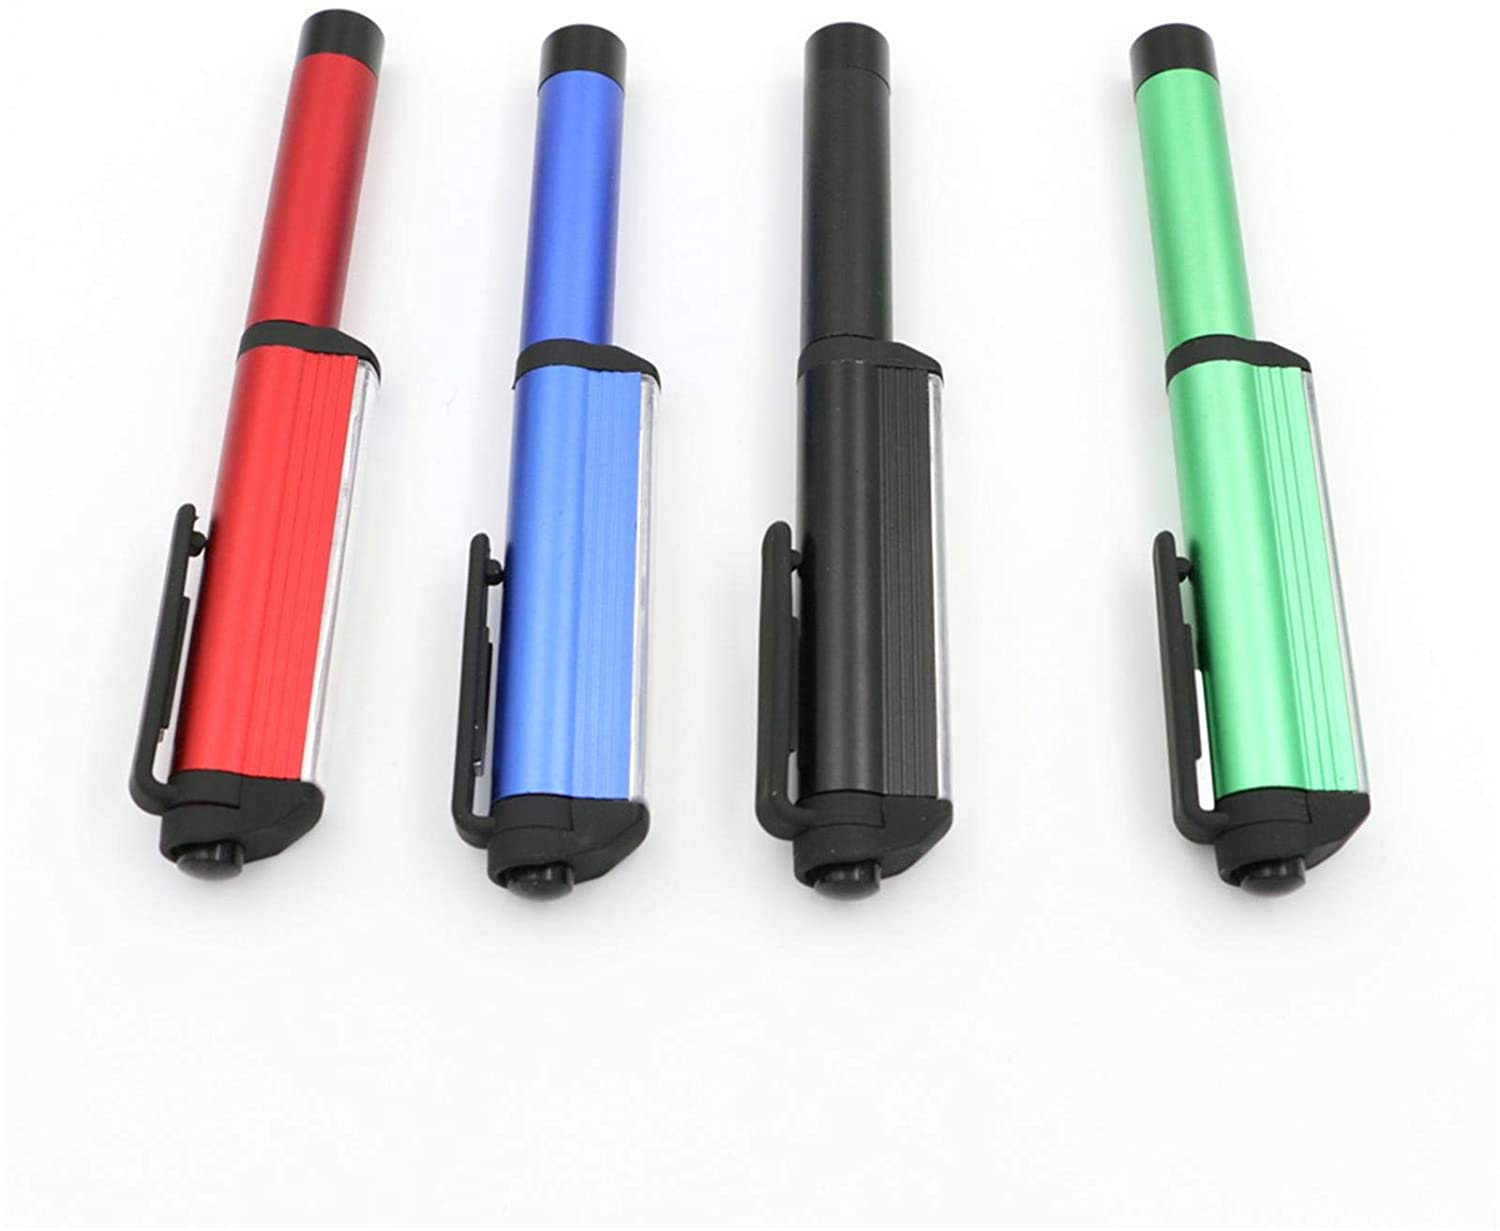 4 PCS LED Penlight,Pocket Pen Flashlight Perfect For Inspection,Work,Repair,Camping(Water-Resistant)